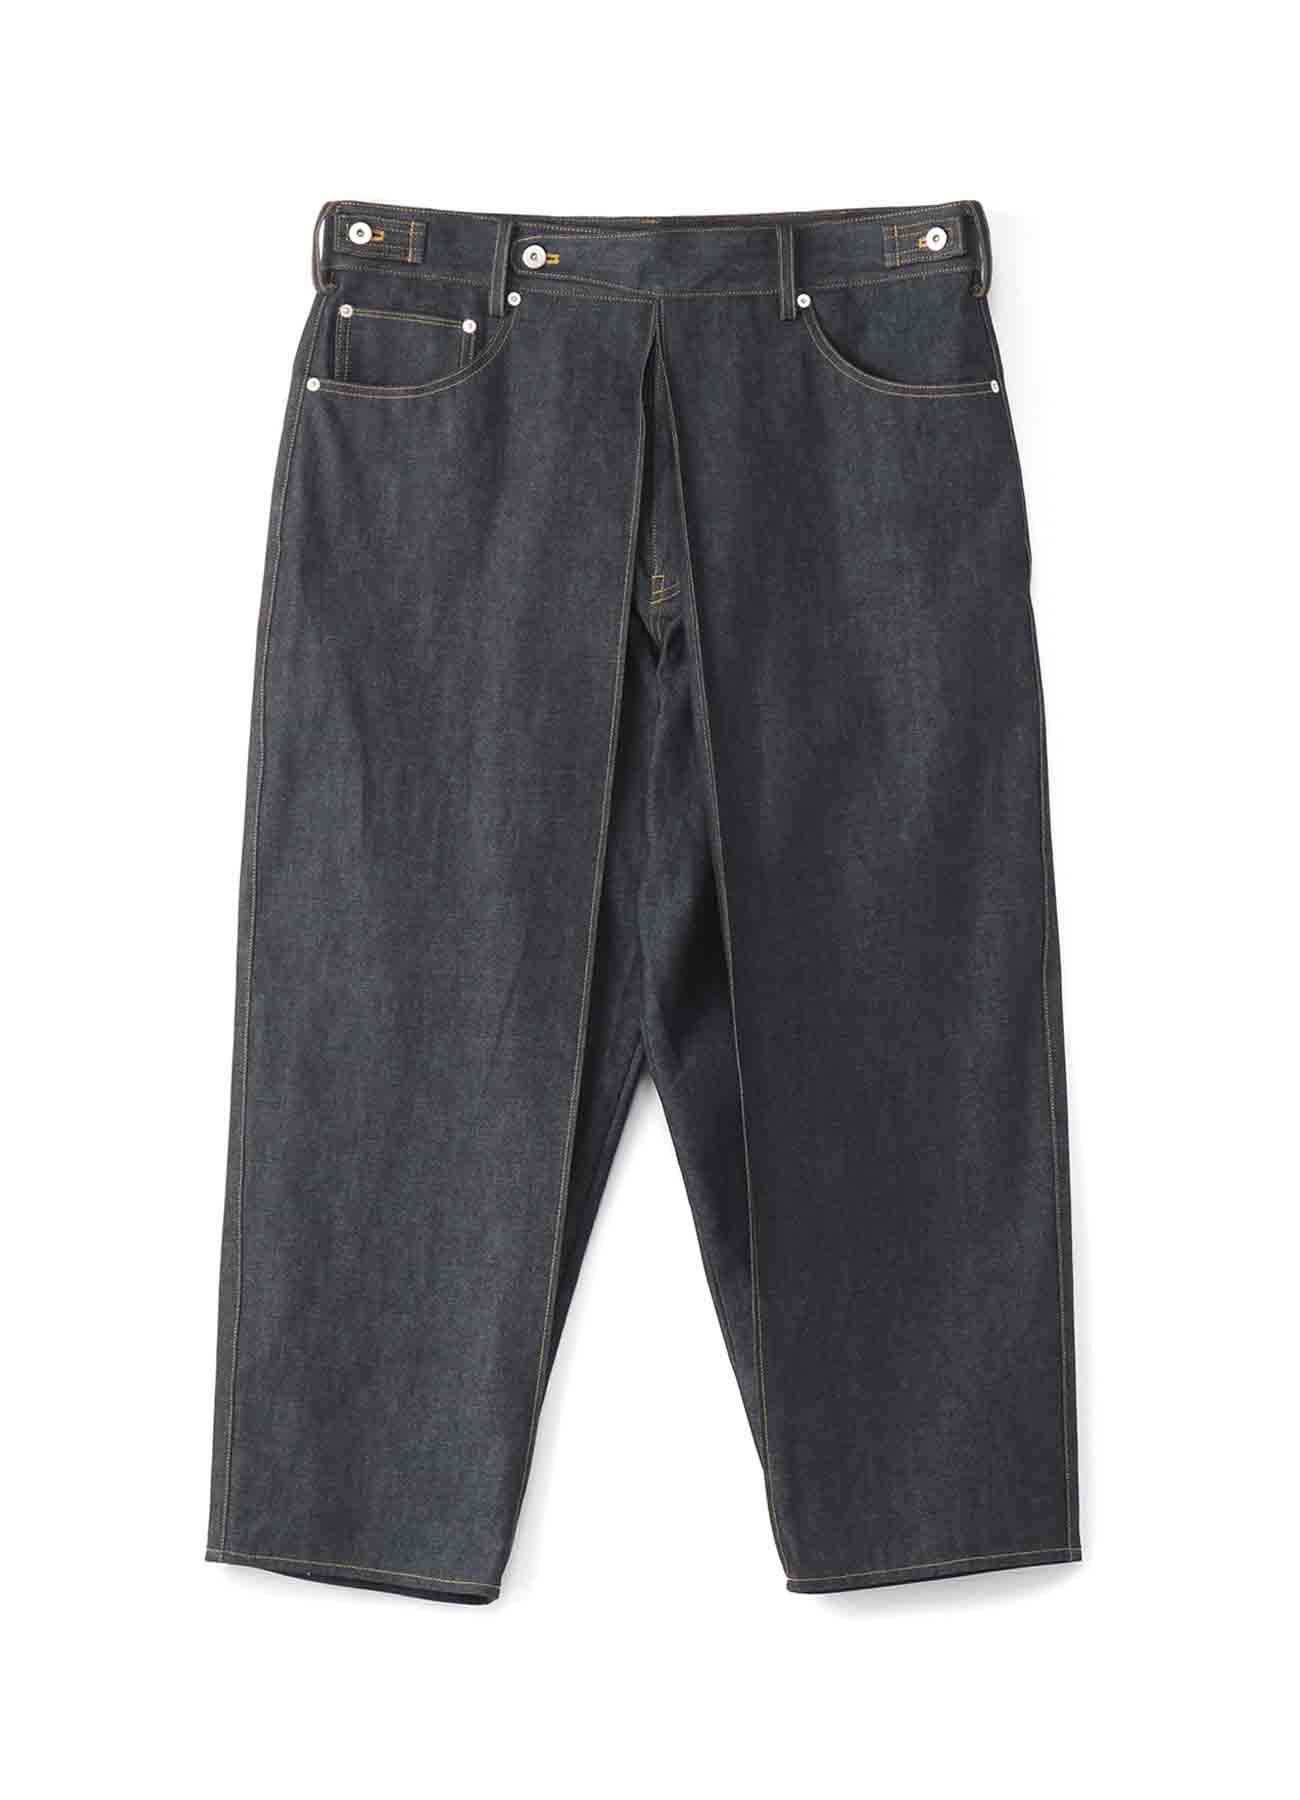 10 oz Denim Center Wide Tuck Pants